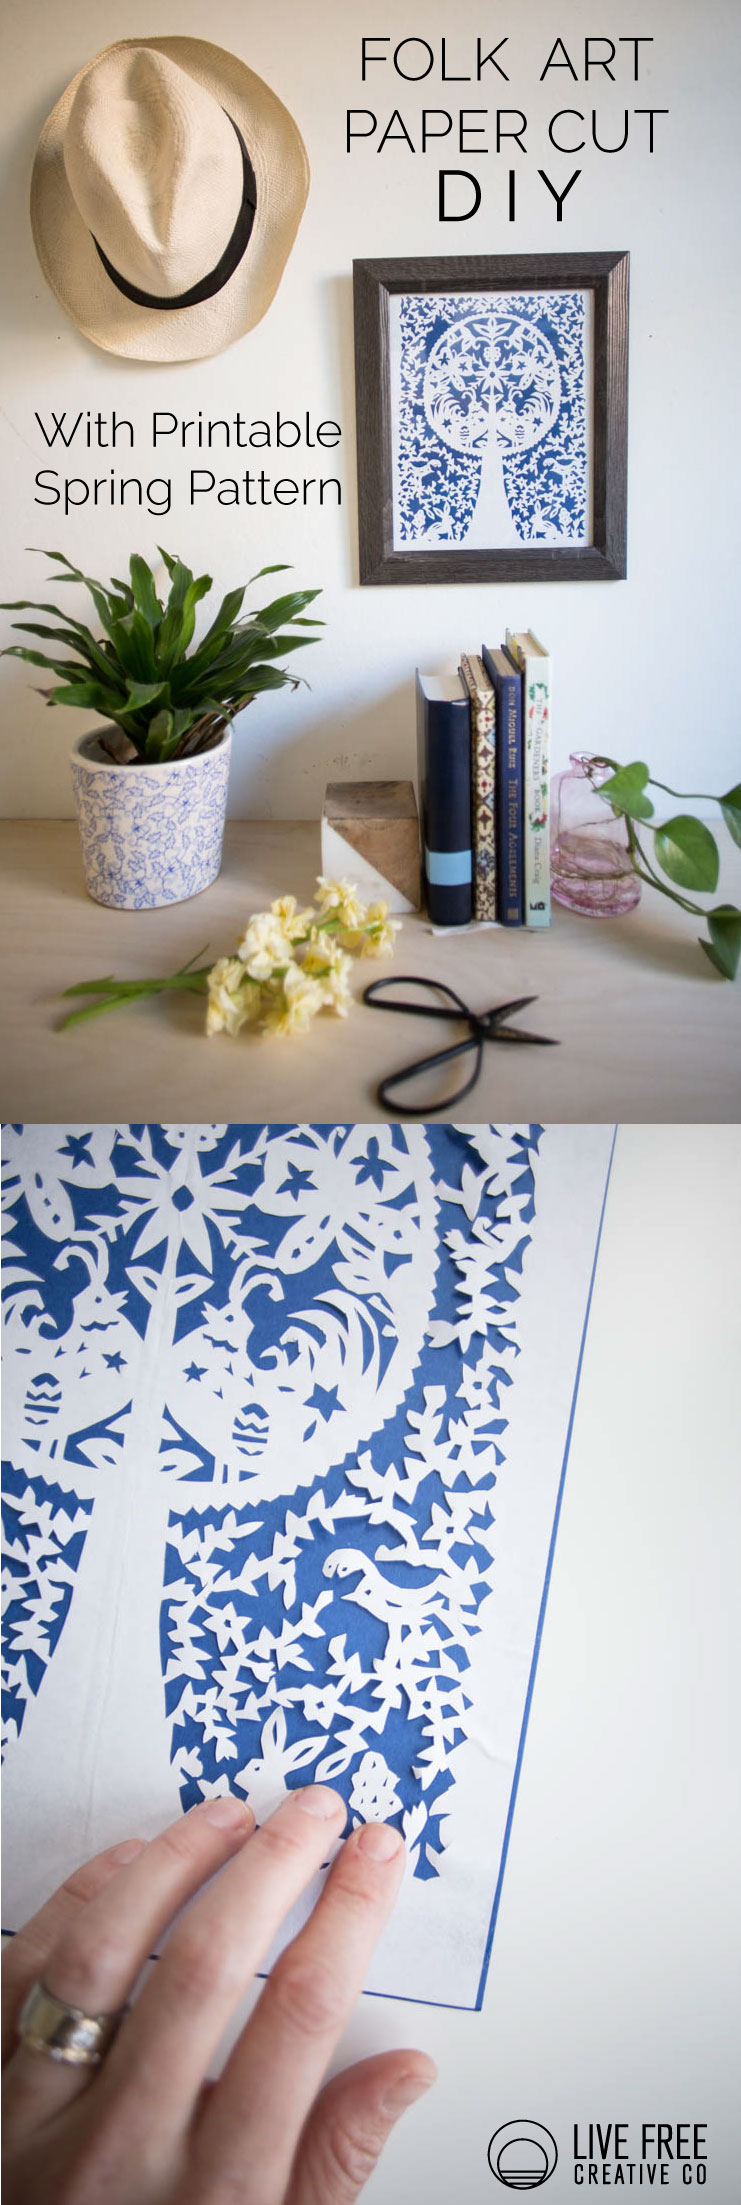 Folk Art Paper Cut Diy With Printable Spring Pattern Live Free Creative Co